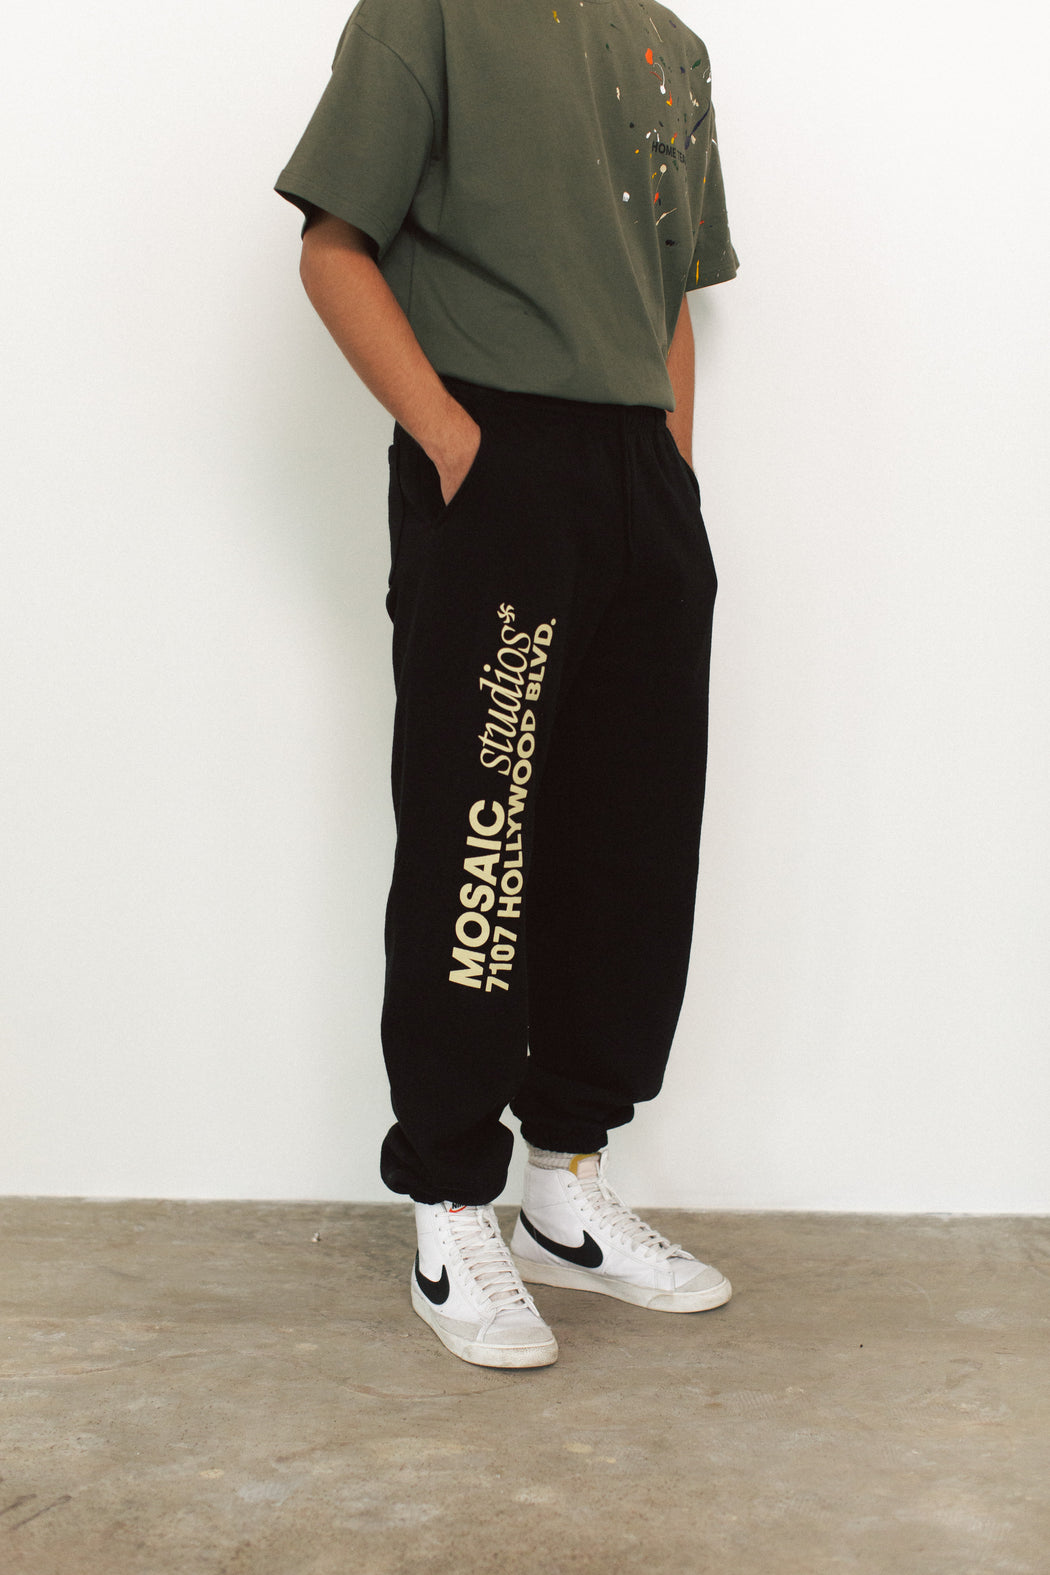 Bundle 01 (The Olive Tee + The Black Sweatpants)